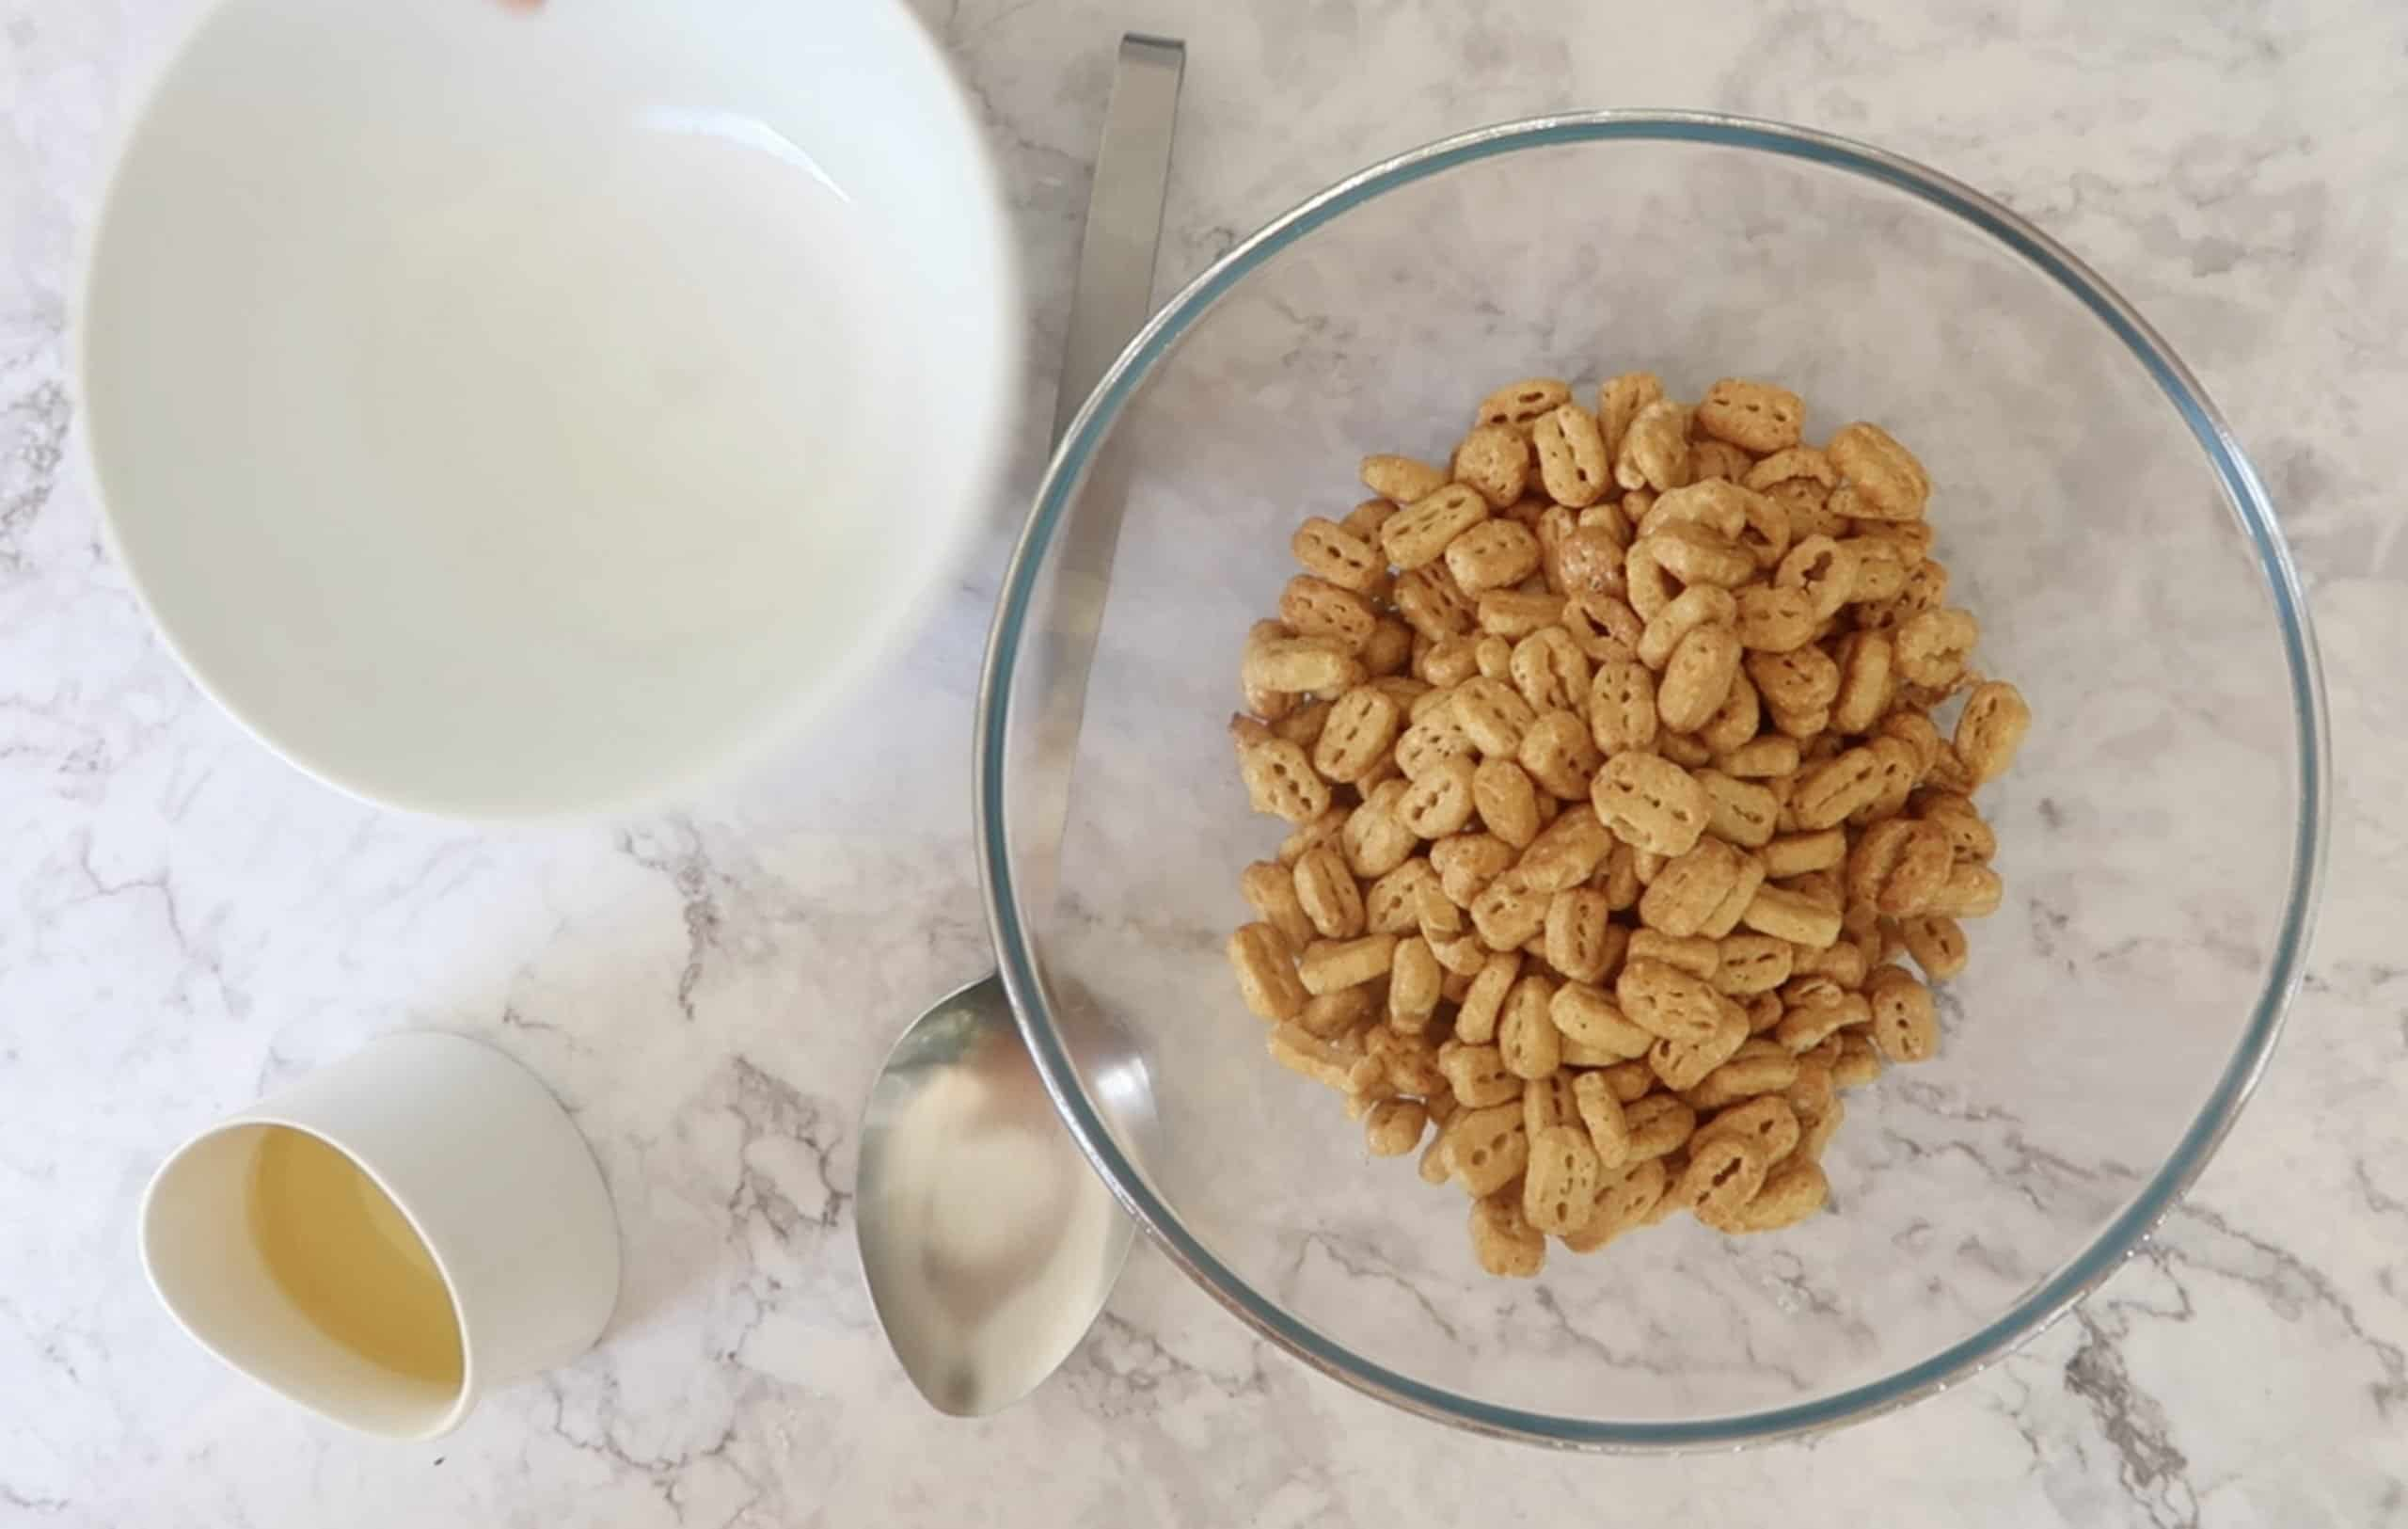 nutrigrain in a glass bowl as part of the ingredients for nuts and bolts